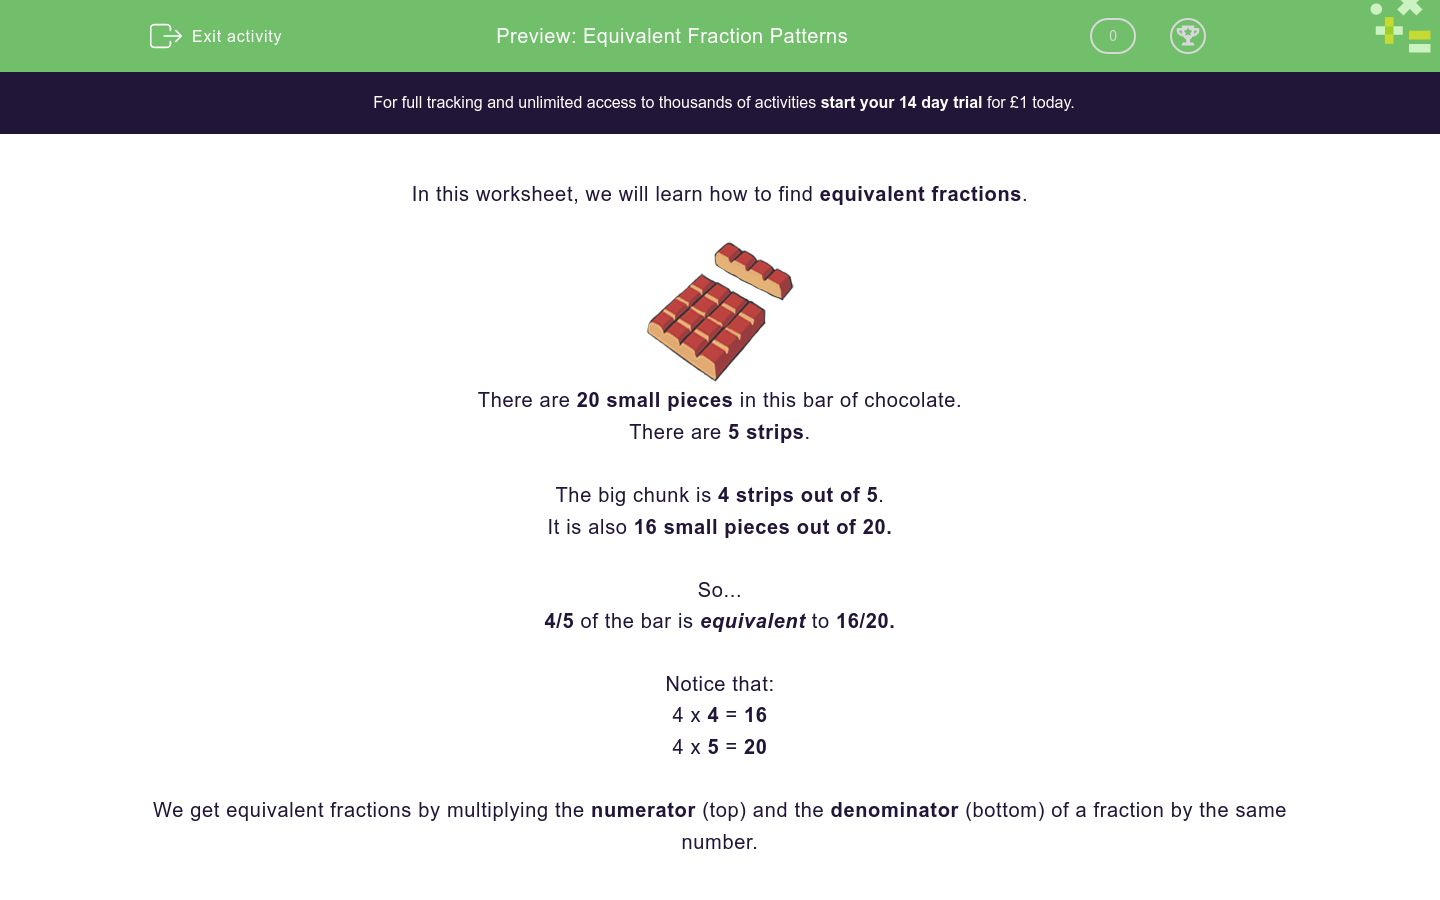 'Equivalent Fraction Patterns' worksheet